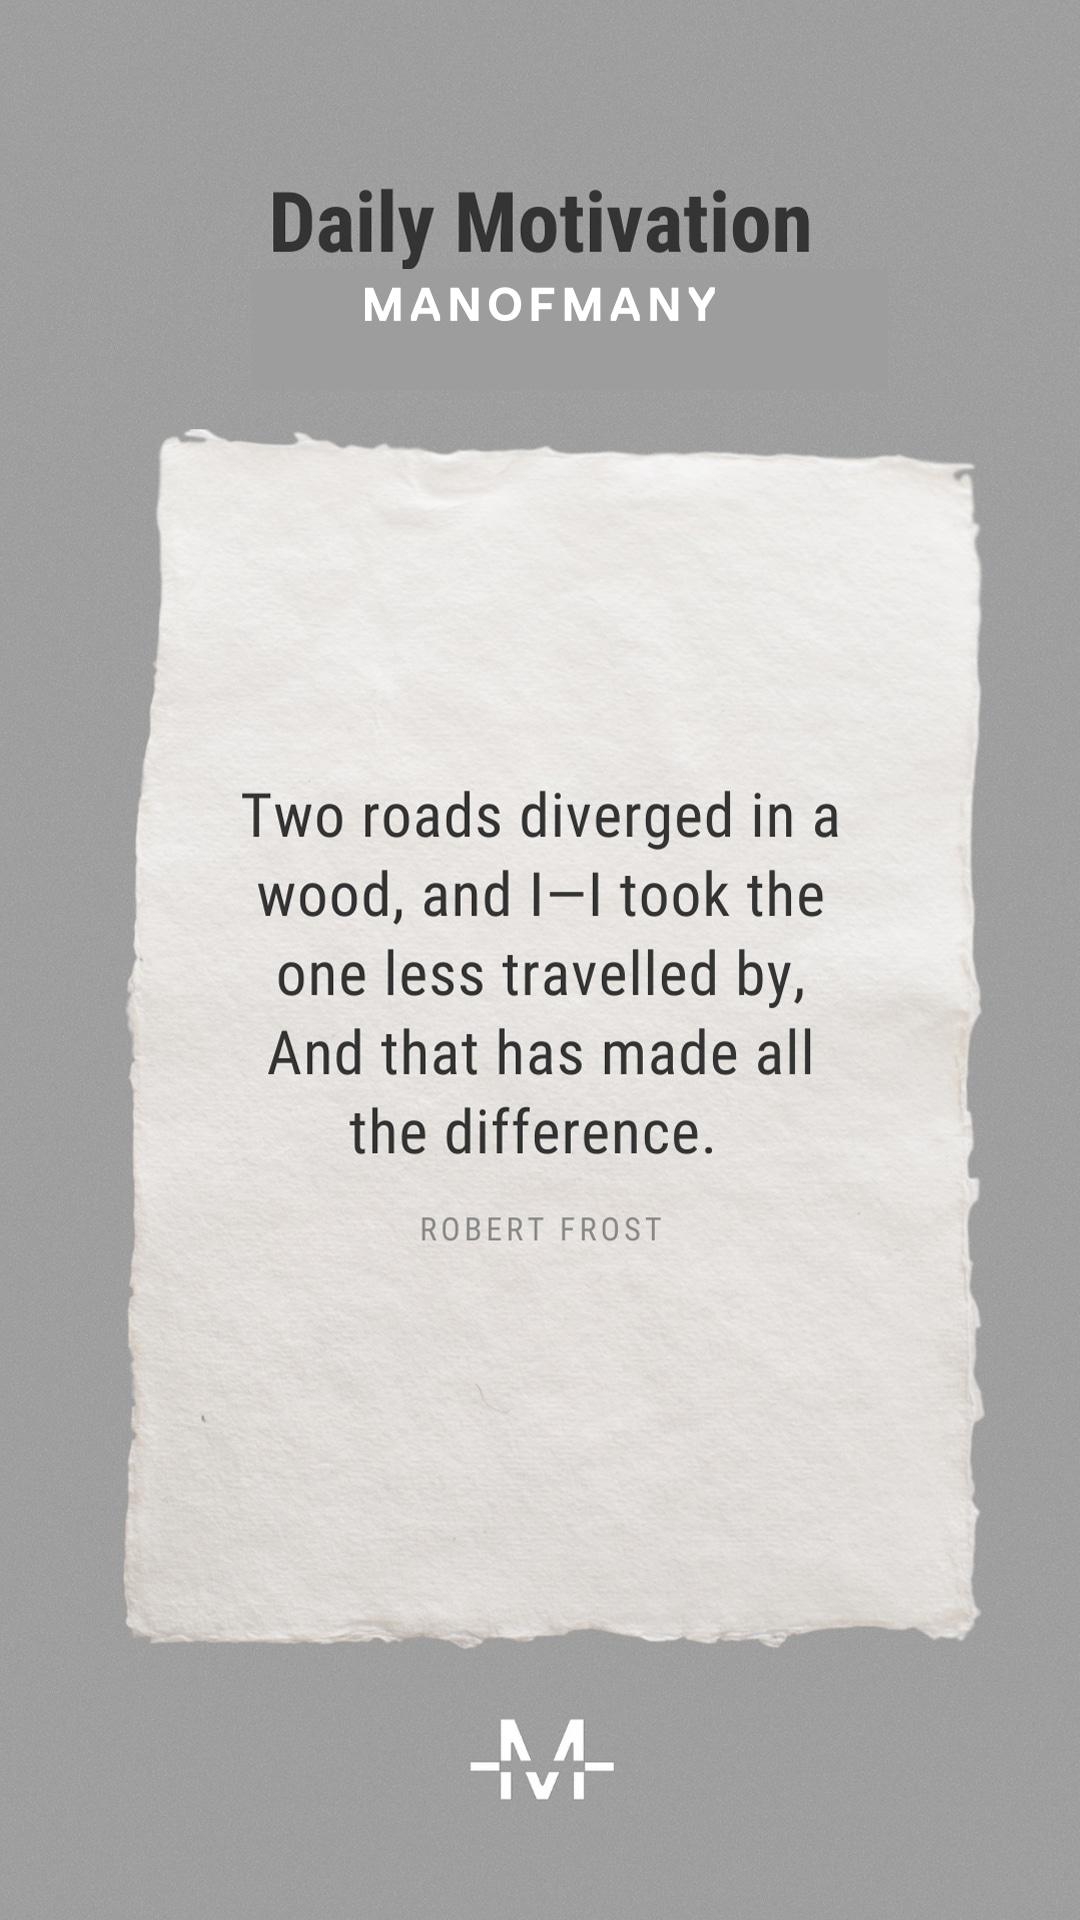 Two roads diverged in a wood, and I—I took the one less traveled by, And that has made all the difference. –Robert Frost quote